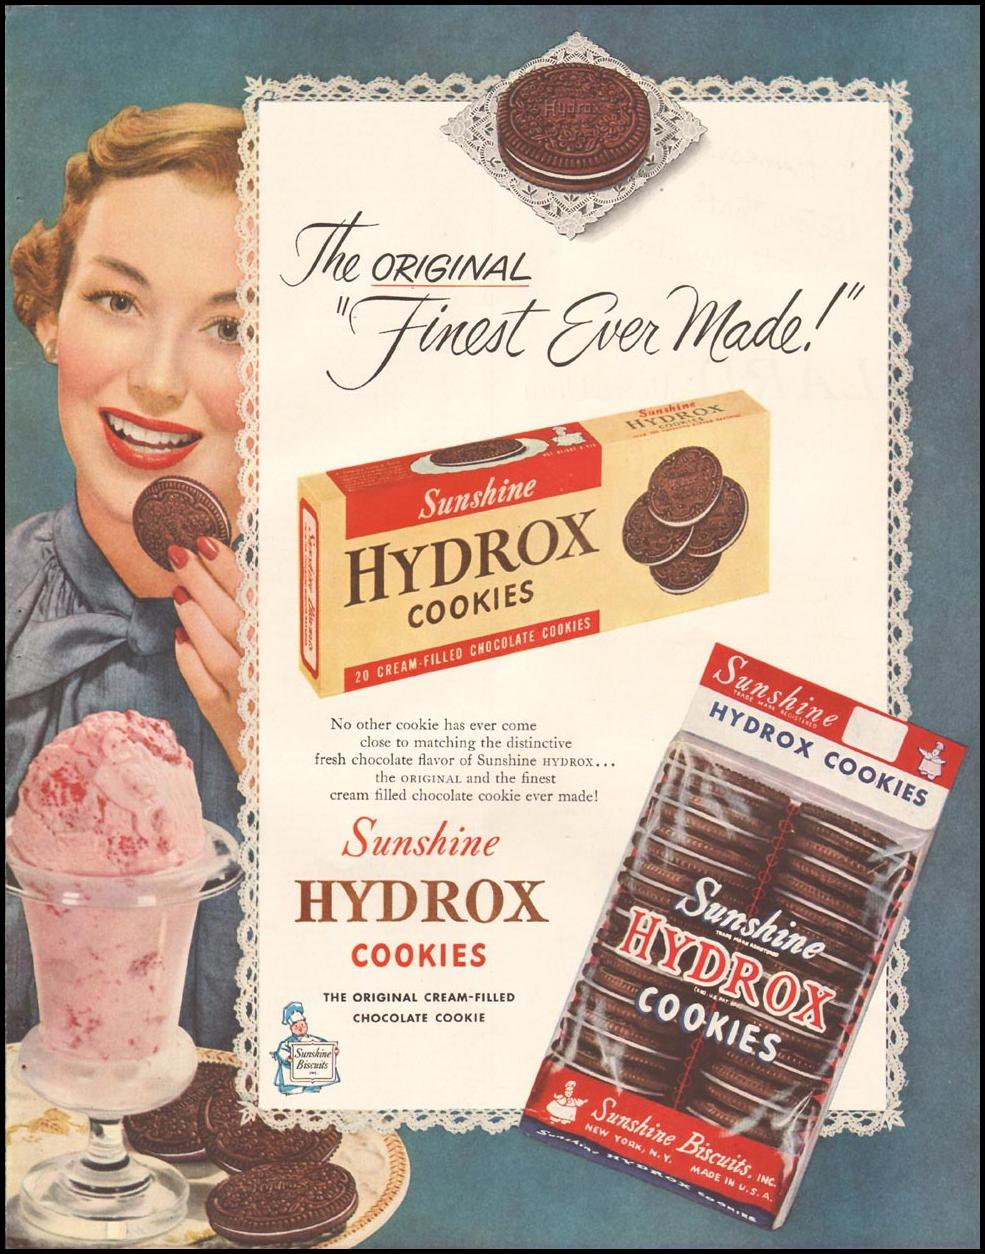 HYDROX COOKIES LADIES' HOME JOURNAL 11/01/1950 p. 107